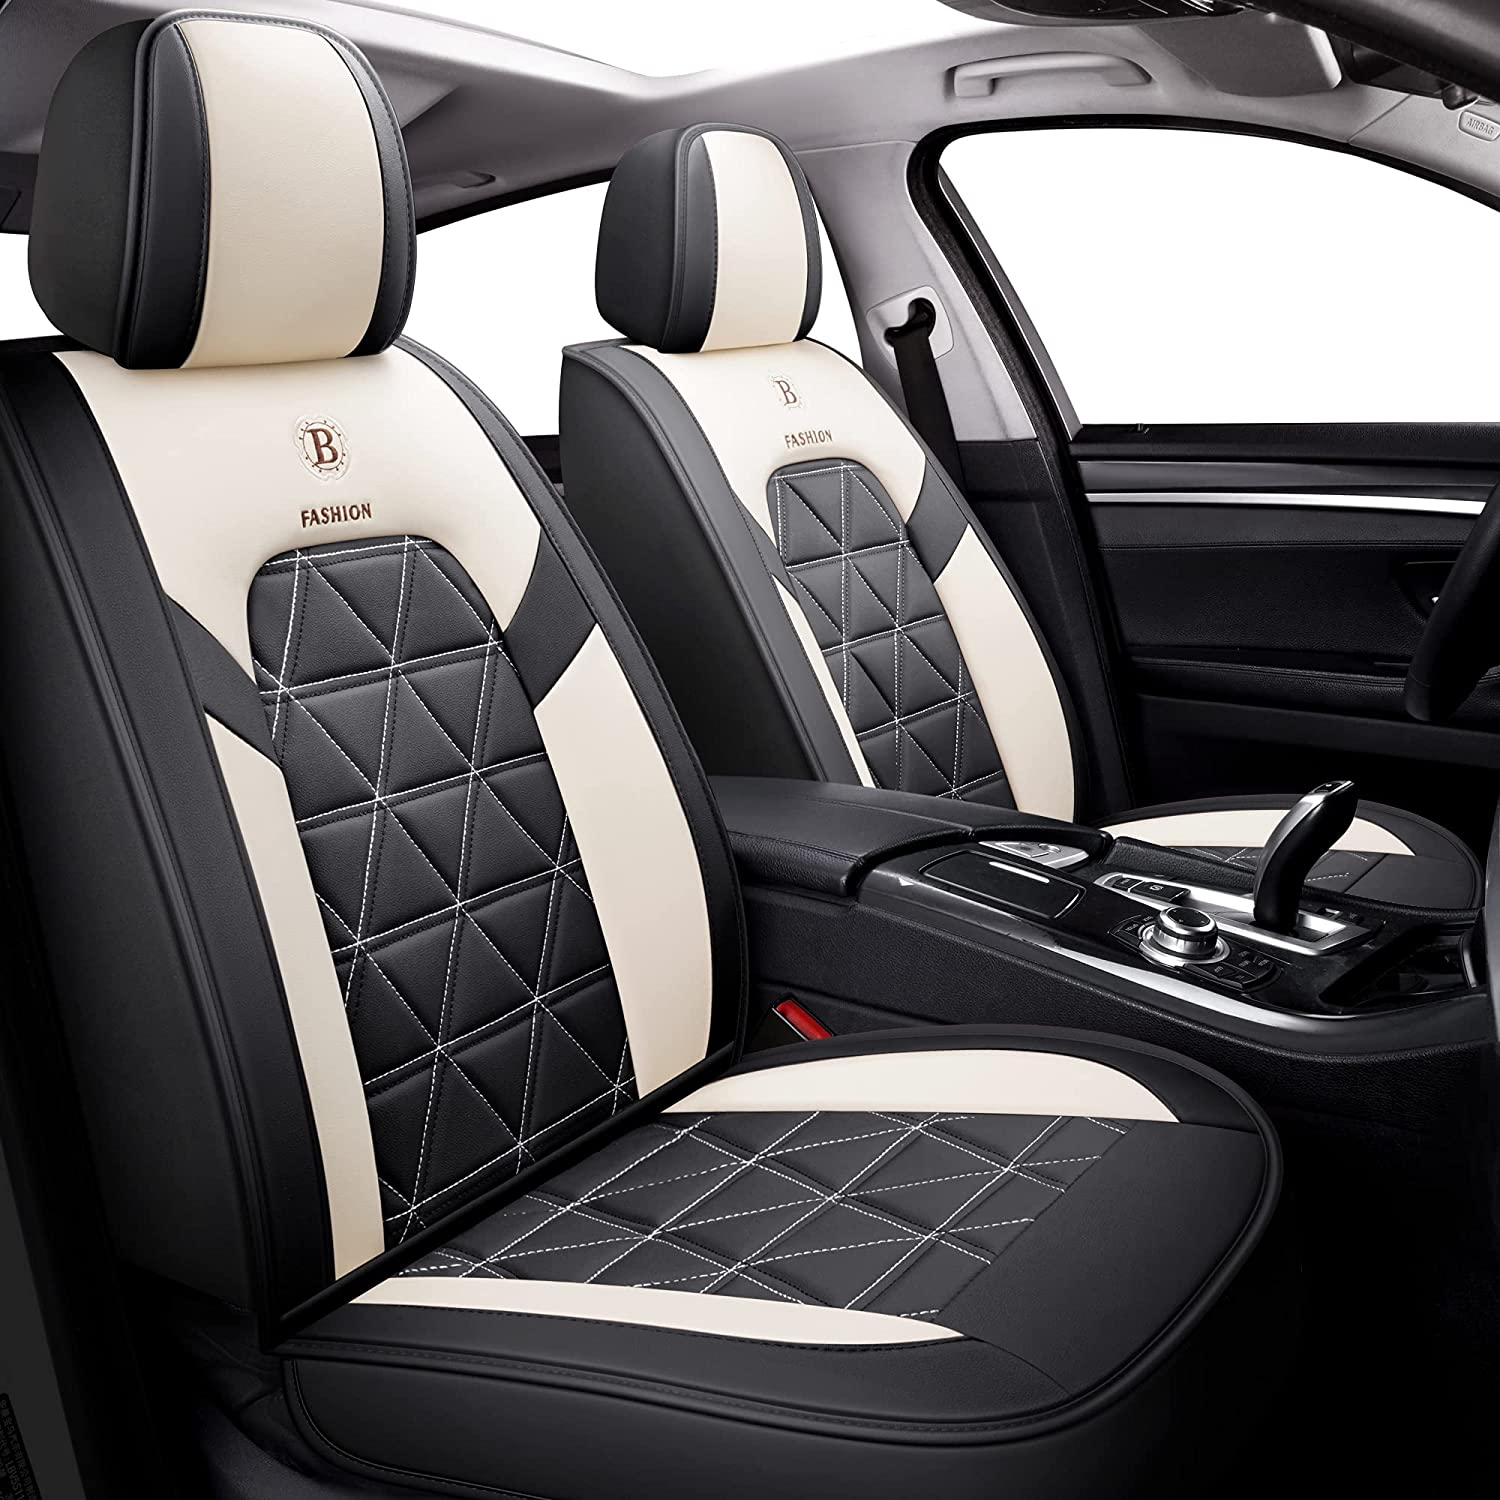 NS YOLO LeatherFabric Car Max 49% OFF Seat Recommendation Automot Leatherette Covers Faux